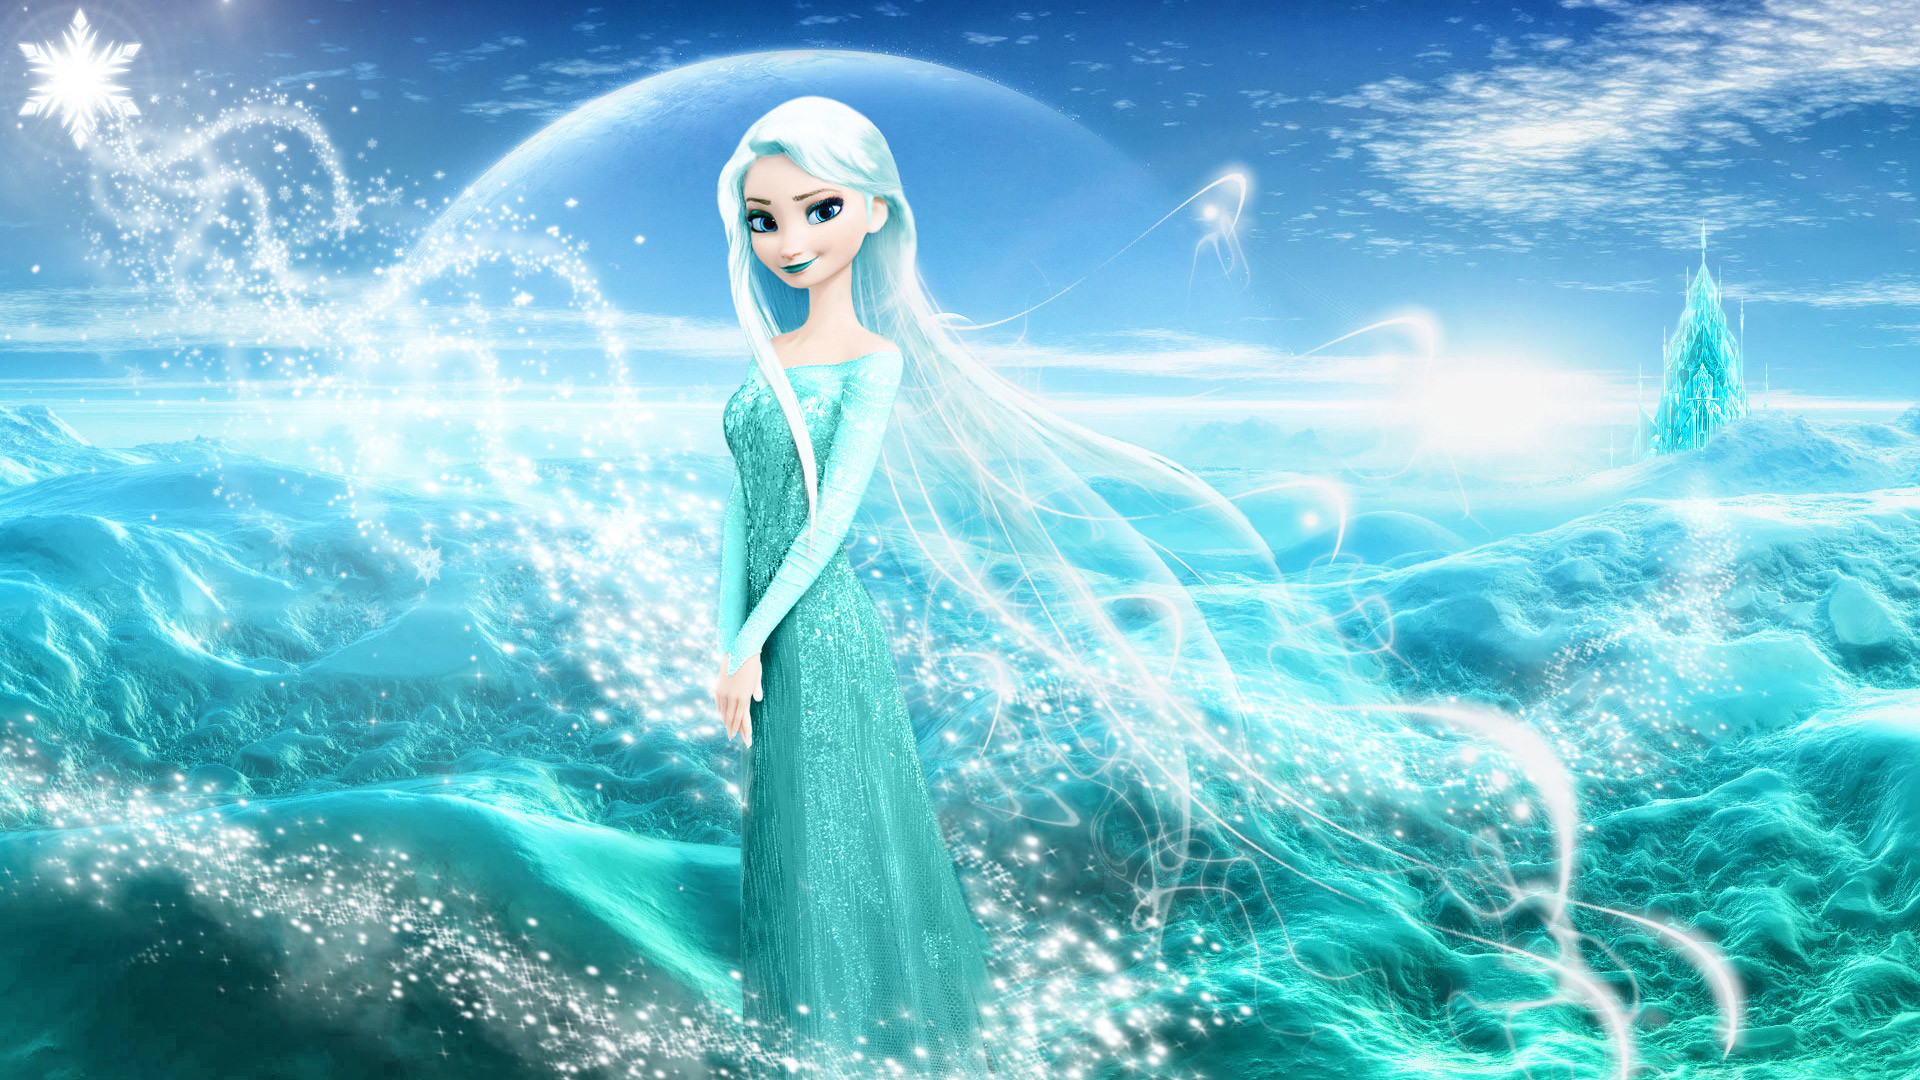 Res: 1920x1080, Wallpapers Elsa Disney Frozen  wallpaper